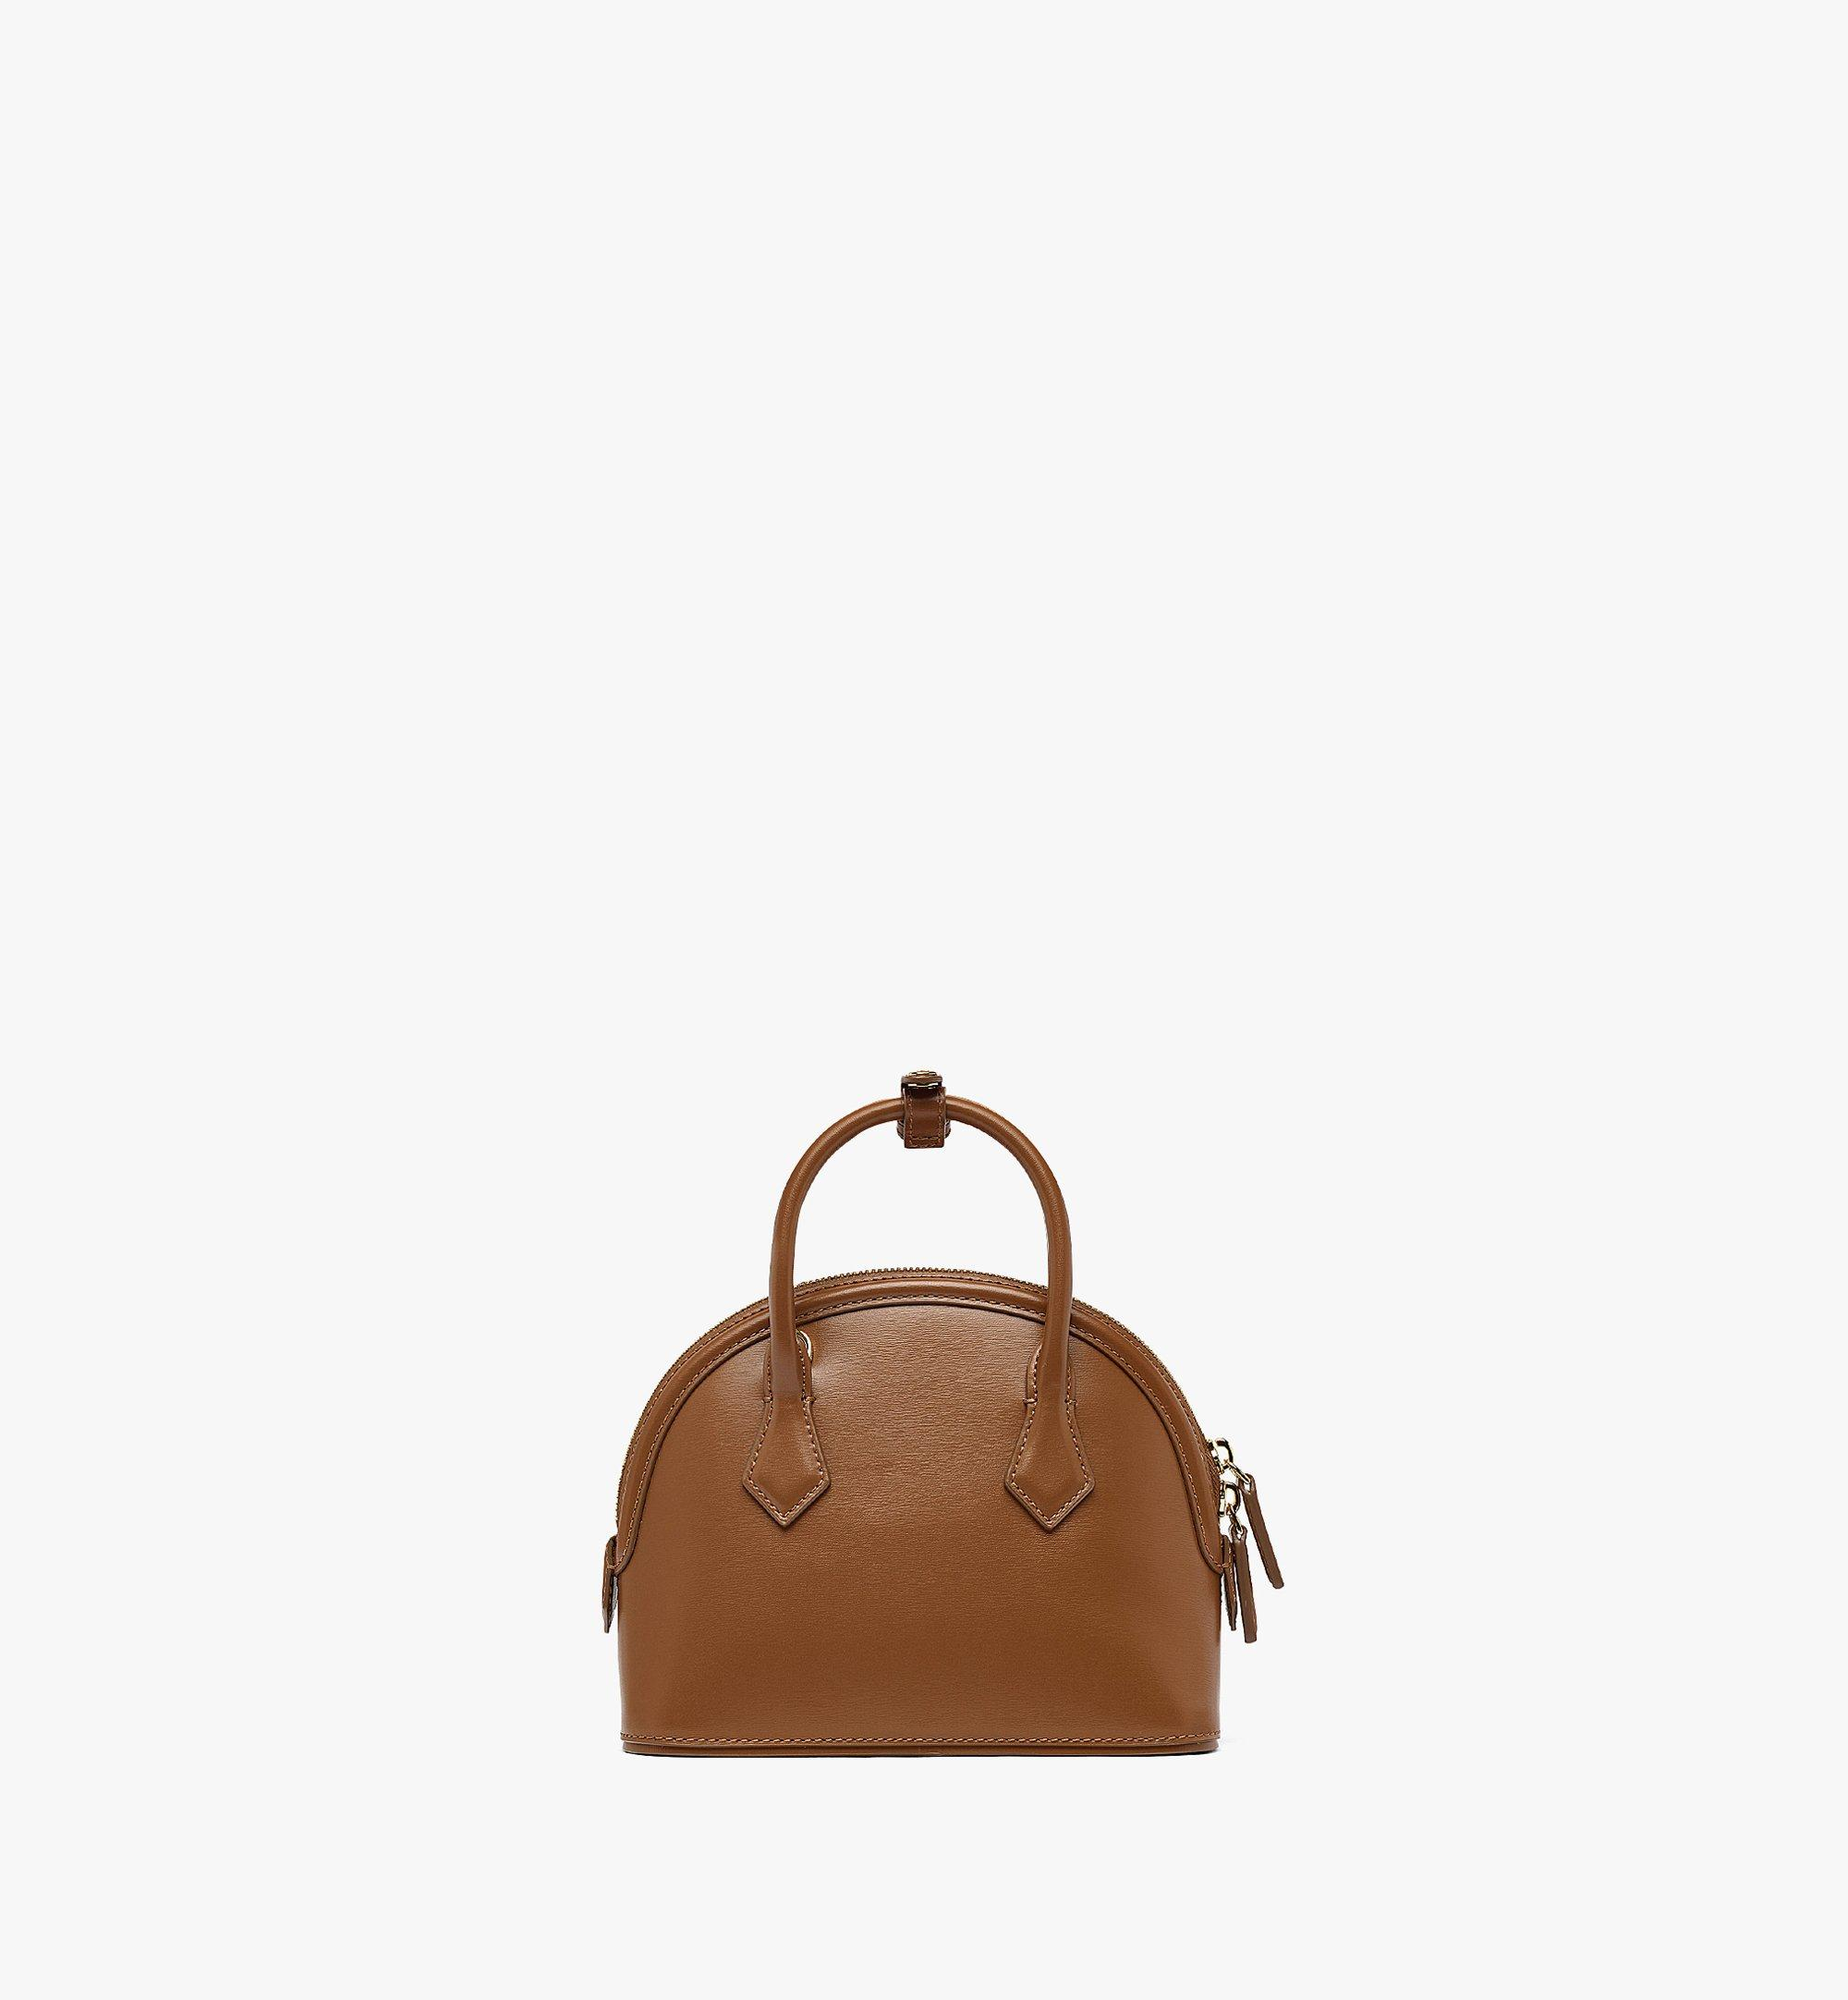 MCM Anna Tote in Spanish Leather Brown MWTBSNN04N7001 Alternate View 3